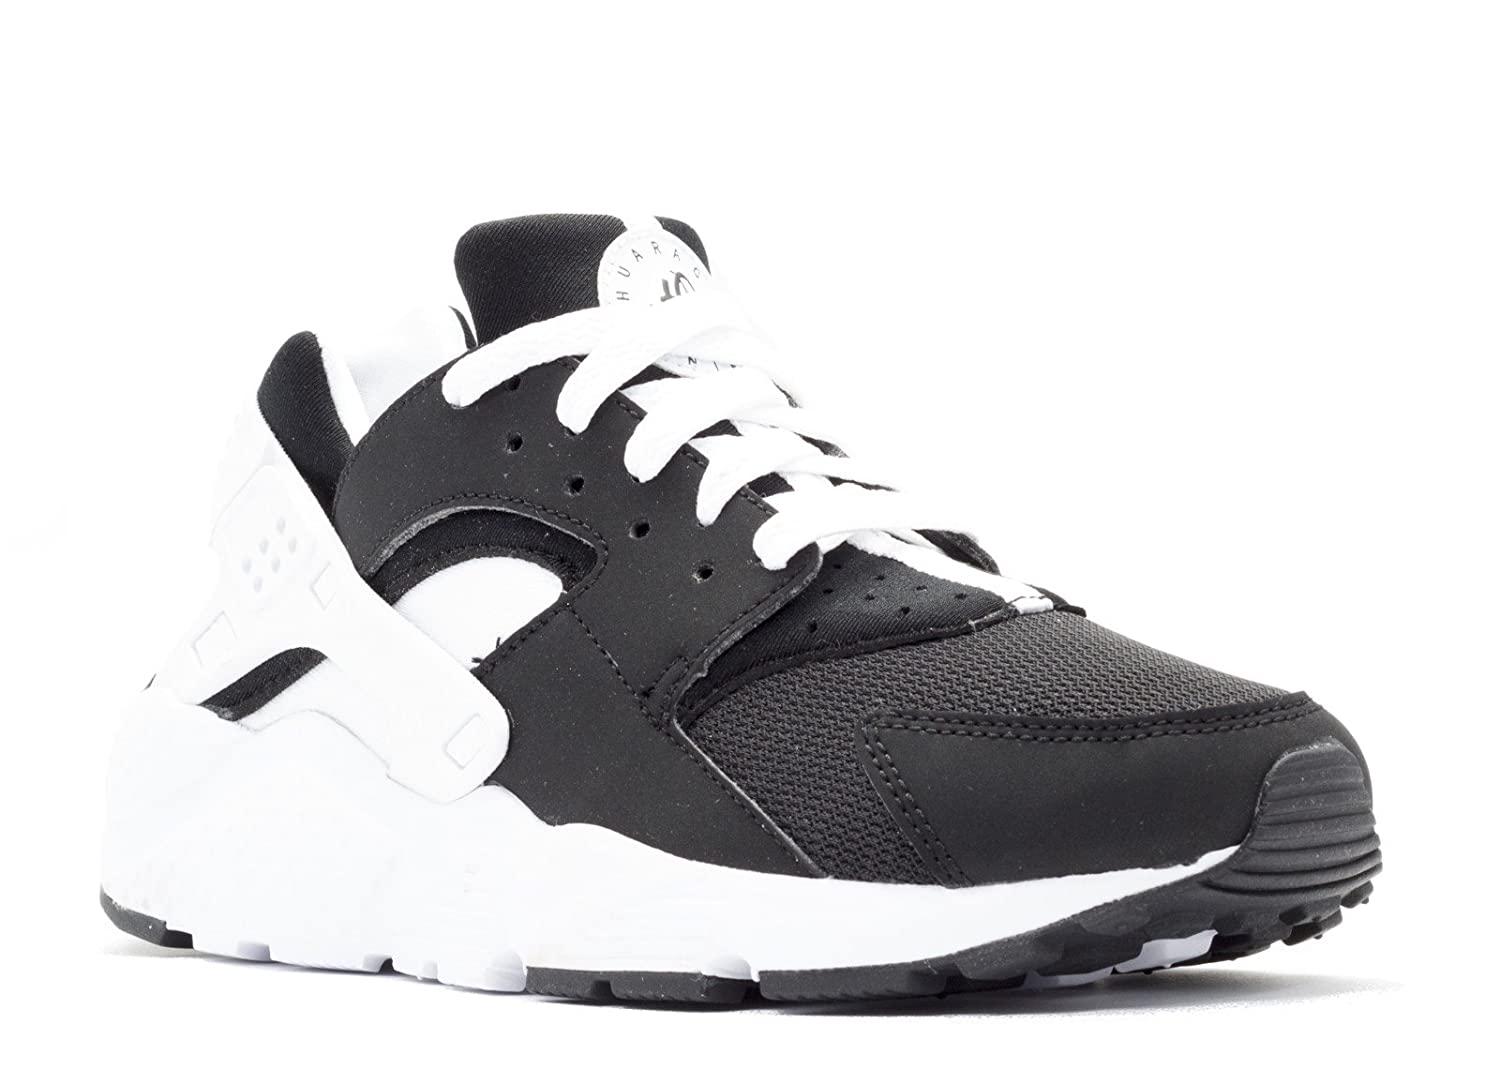 738eb274060 Amazon.com | Nike Huarache Run Boys Shoes Black/White size 4.5 M US Big Kid  | Running